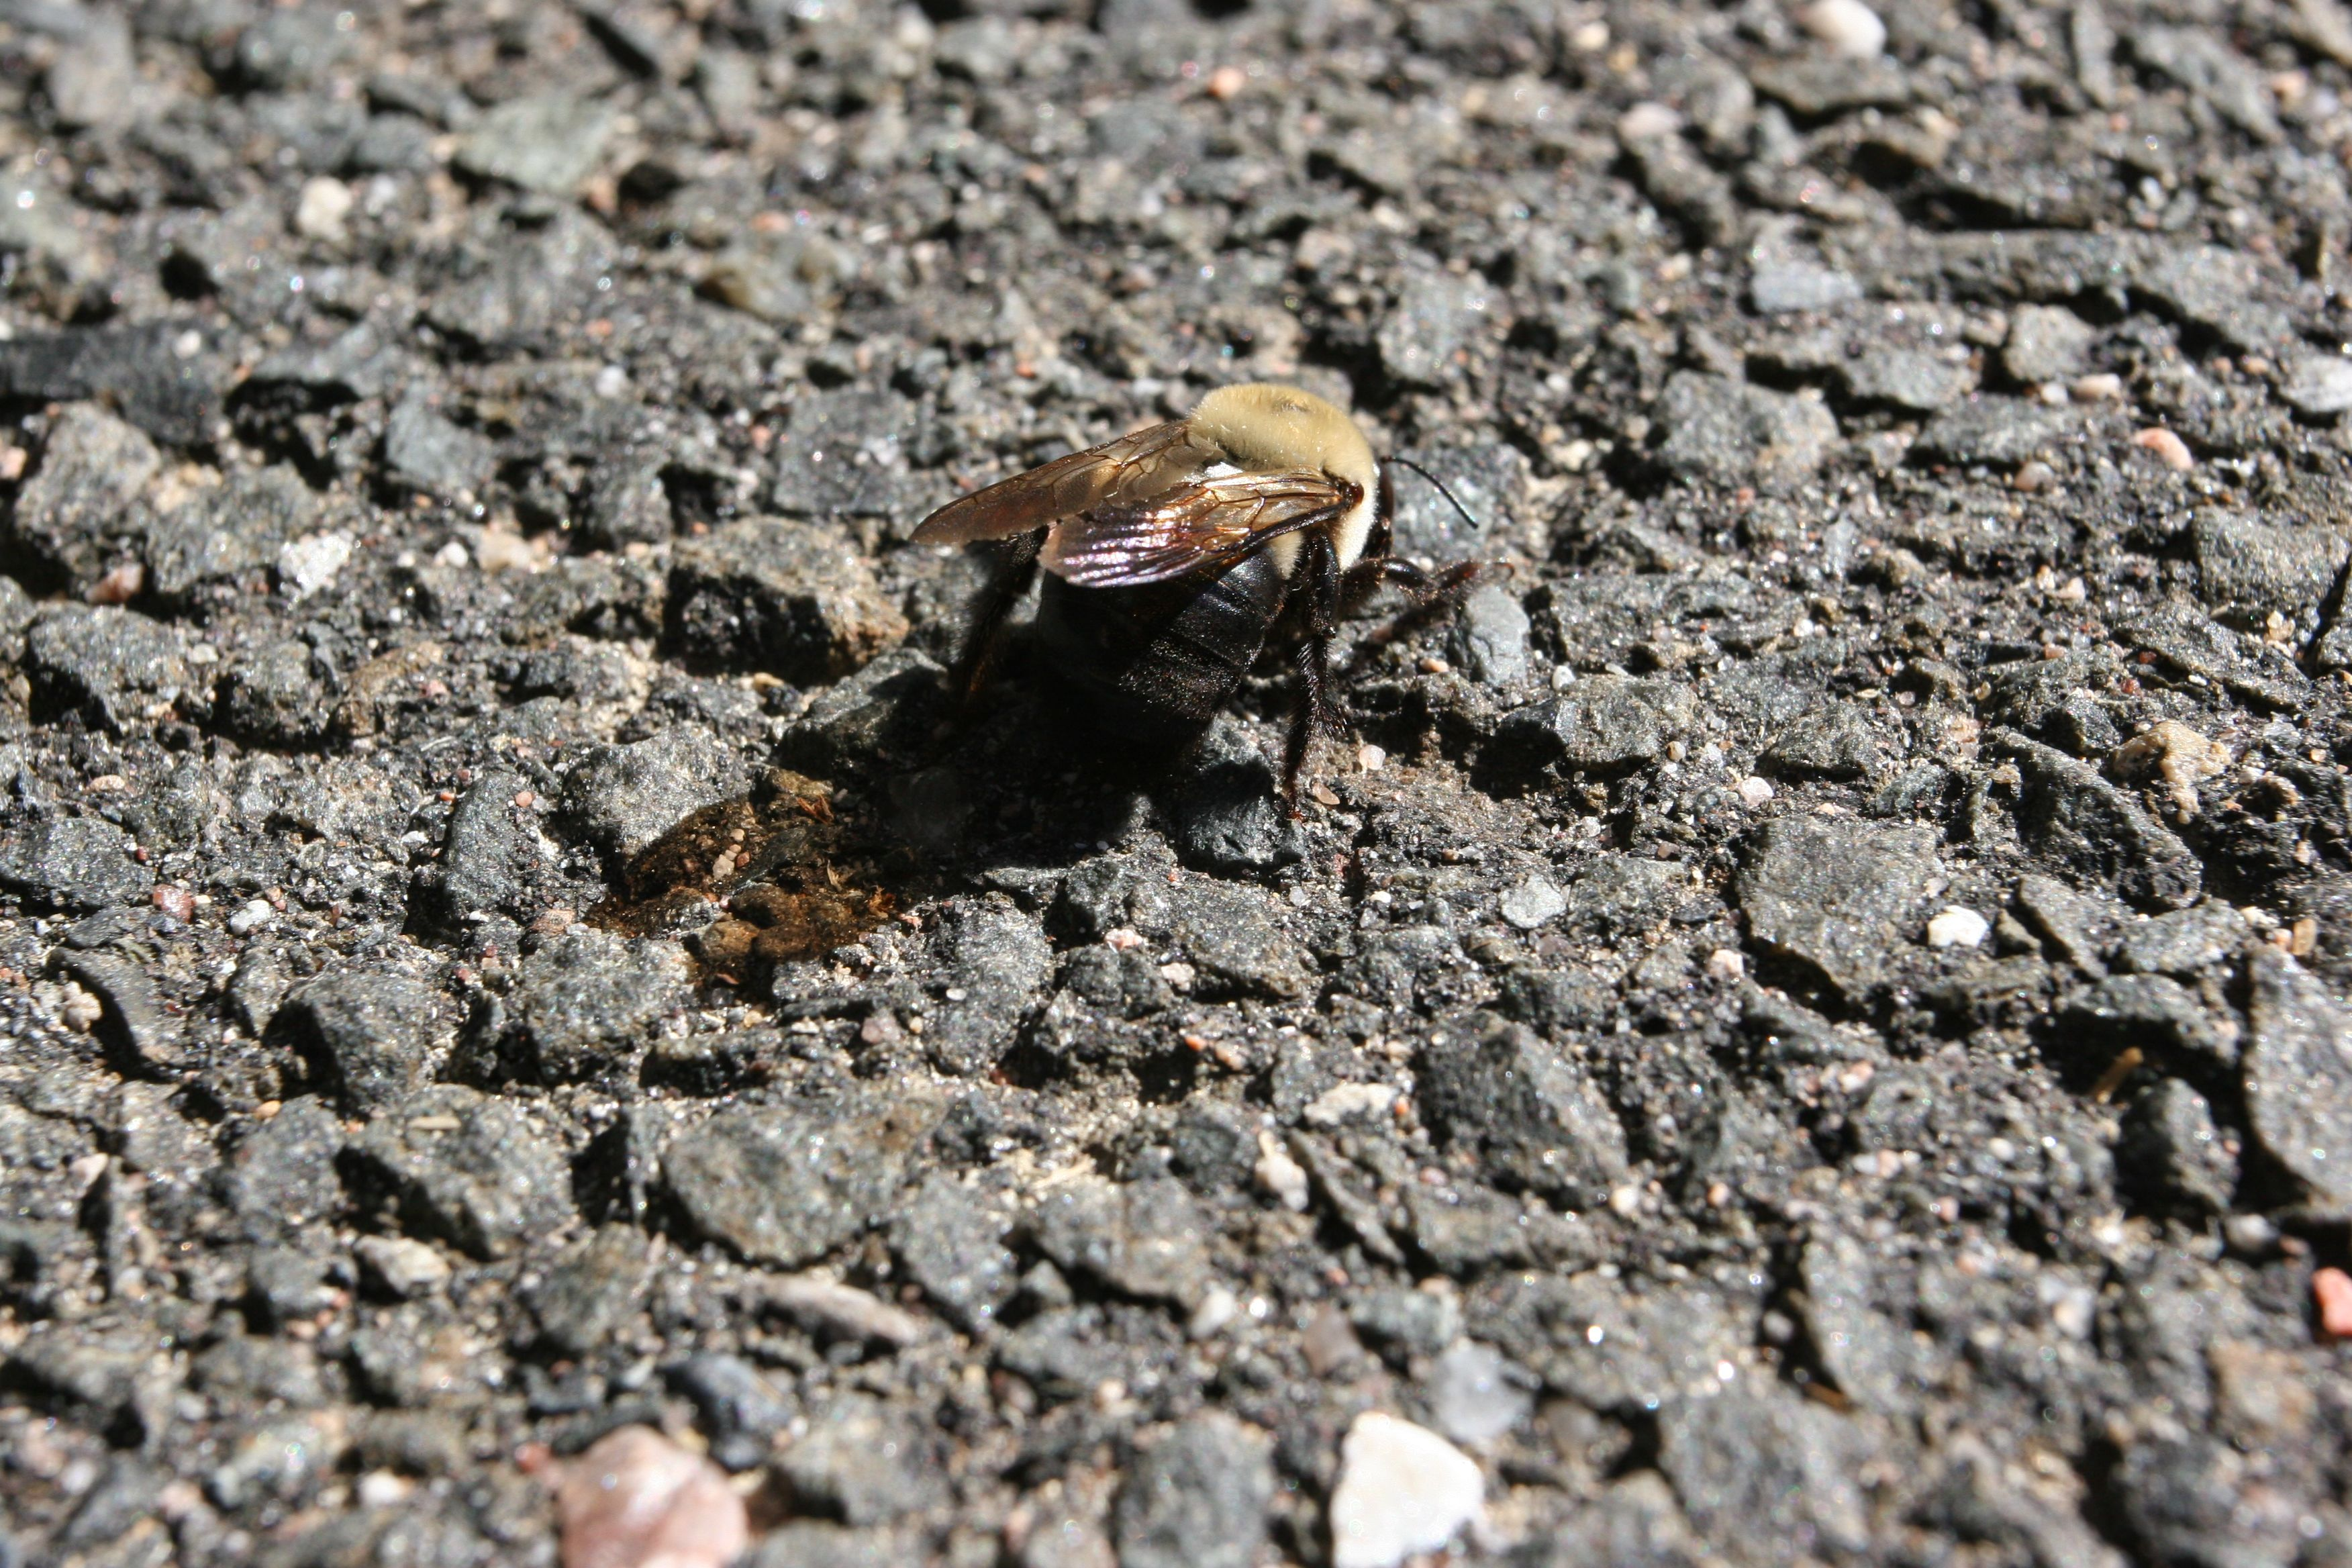 Beauty shot: dying bee. I'm loving the way the sun shines through his wings onto the driveway. Lovely little thing.